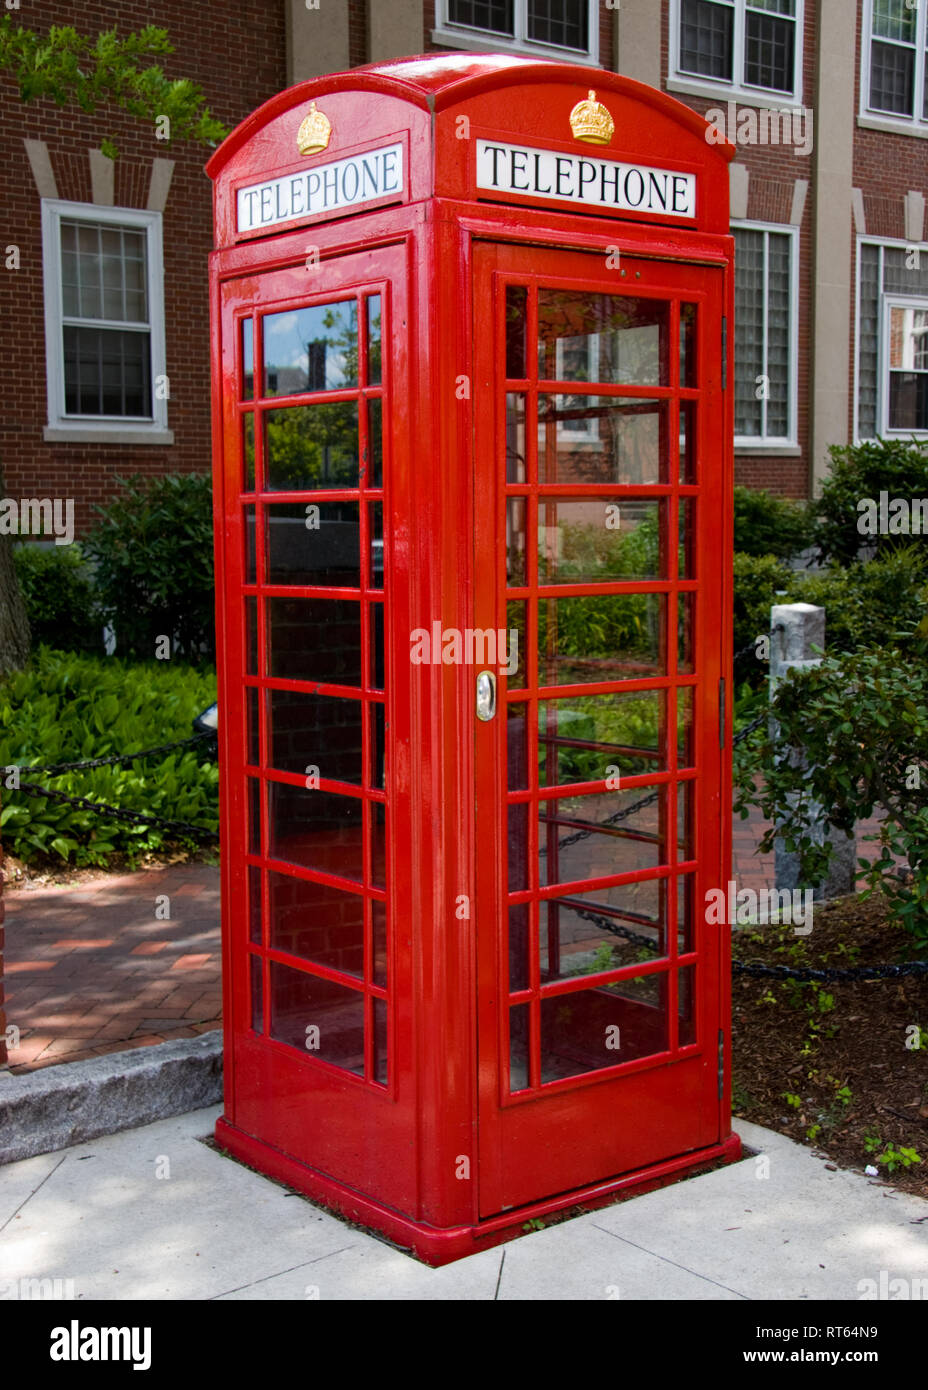 London telephone booth (kiosk) on a side street in Manchester, NH - Stock Image